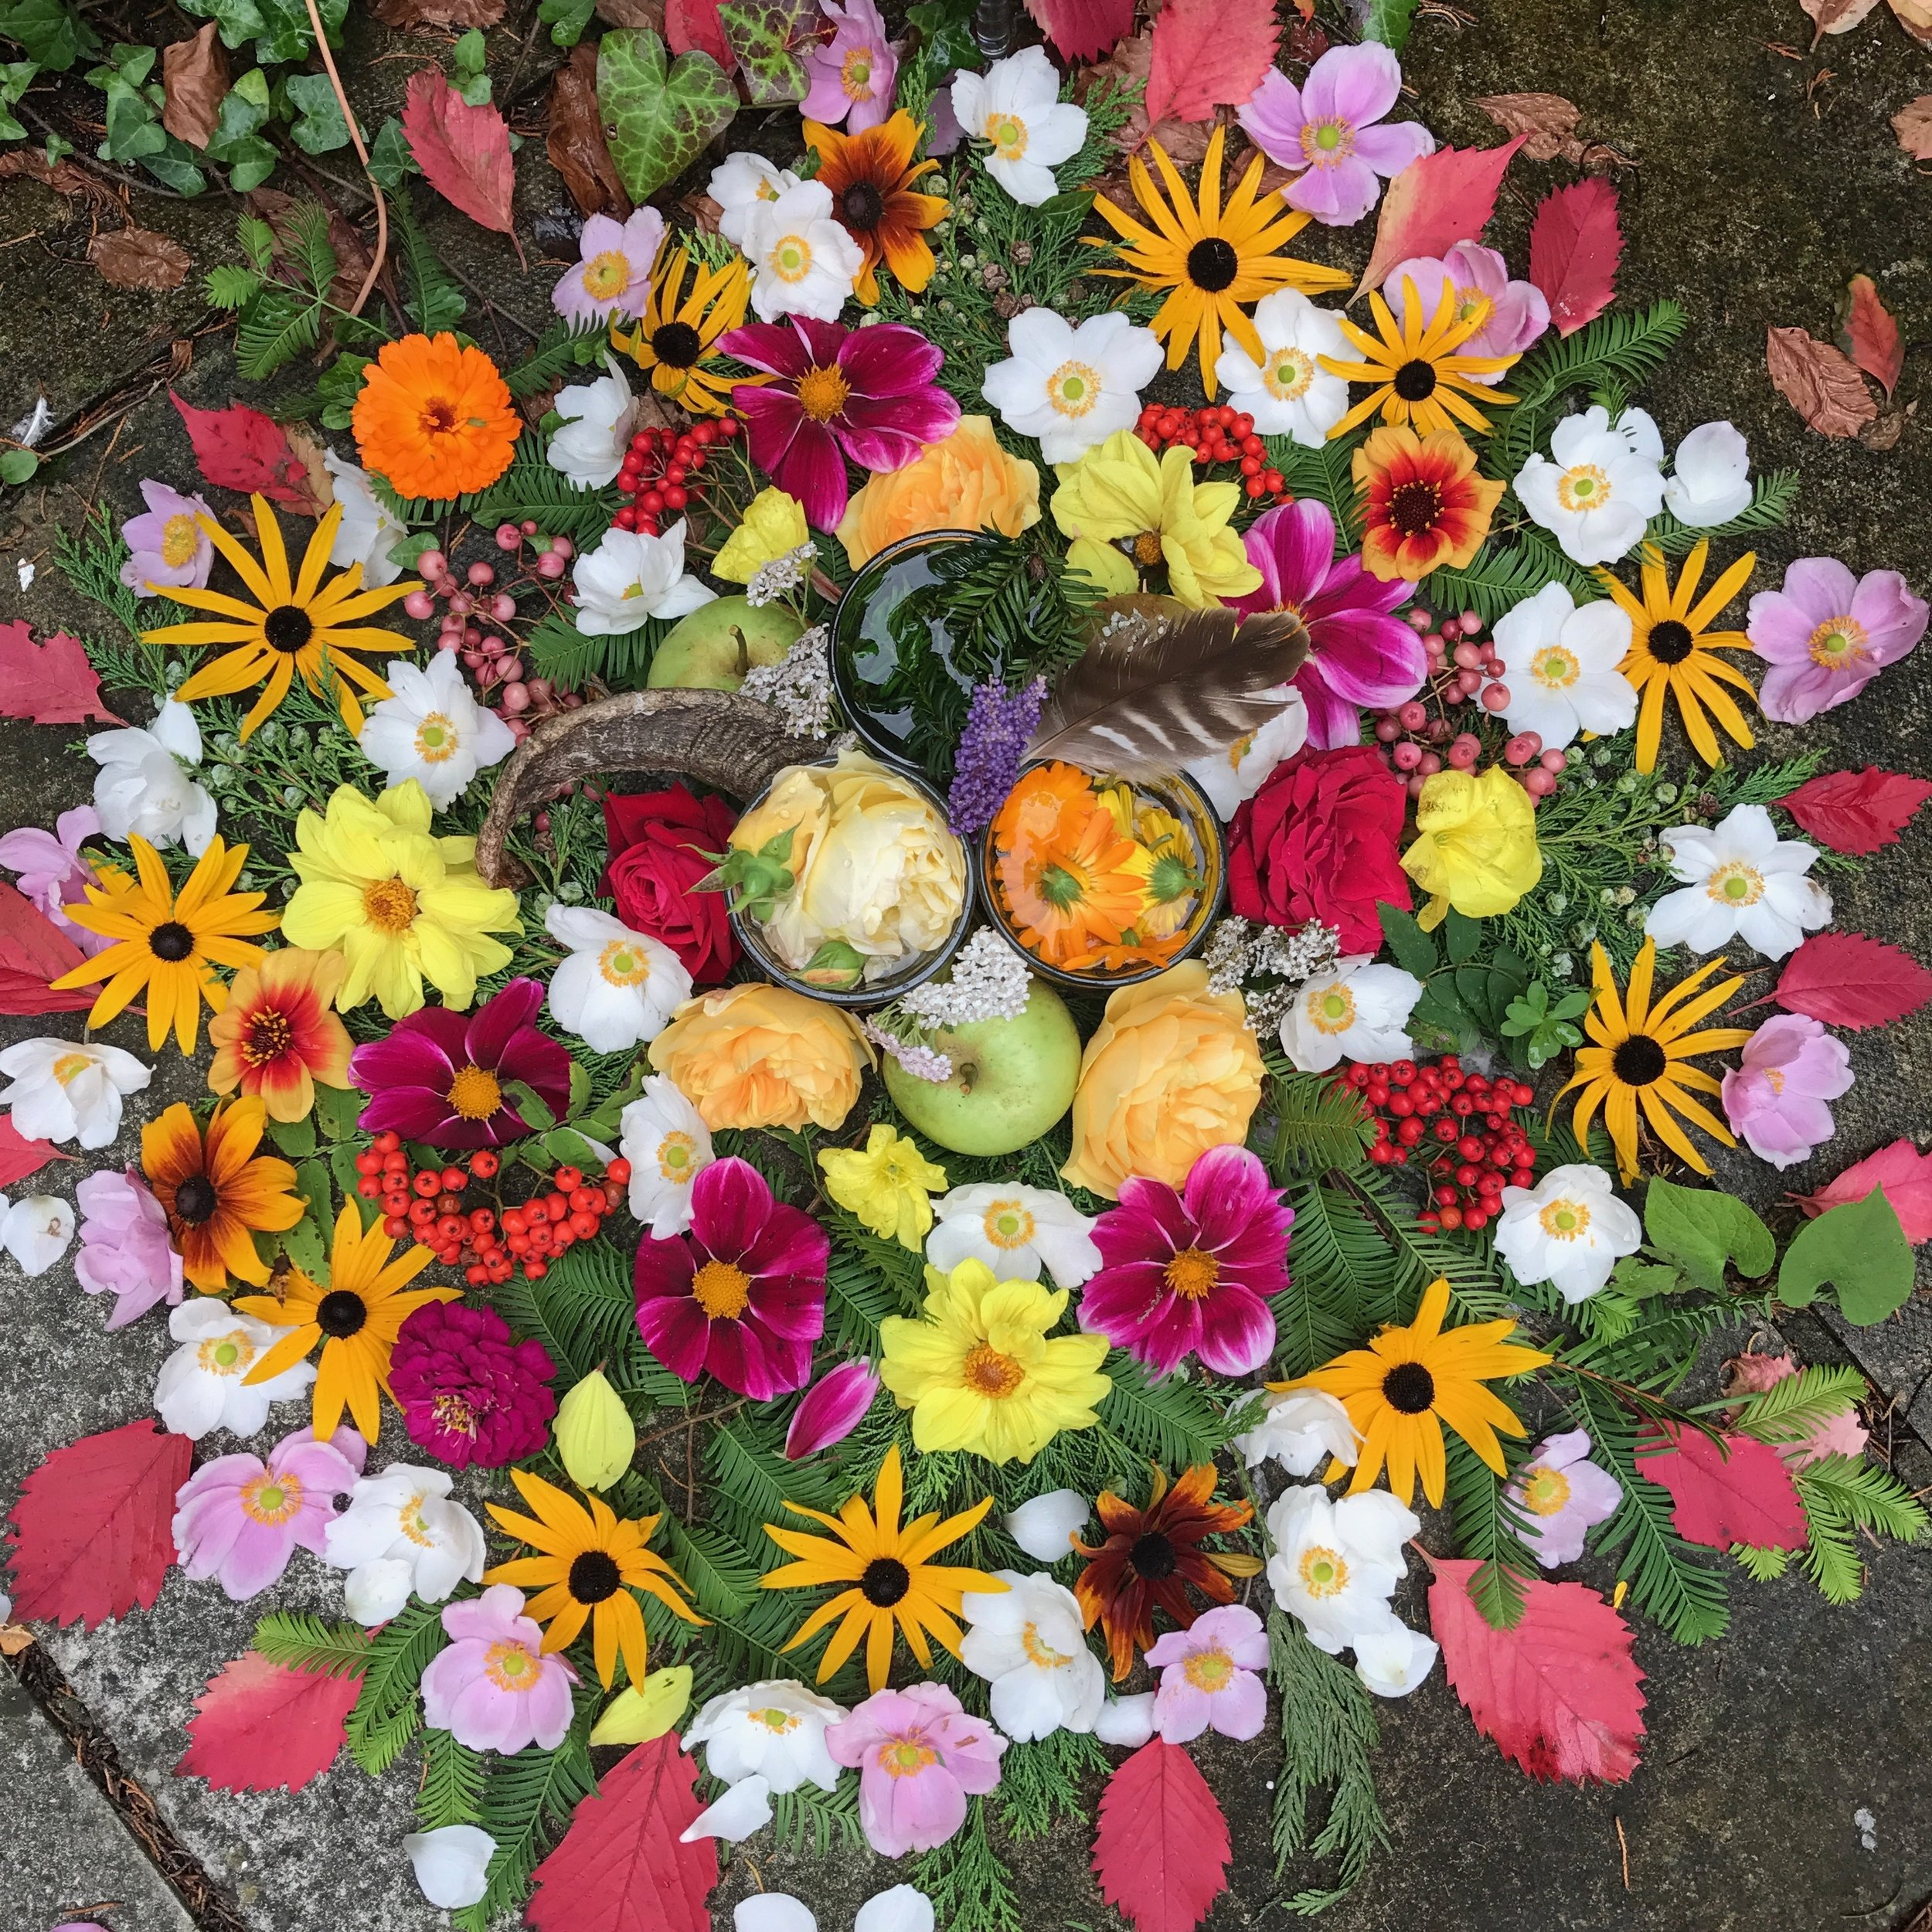 Avalon Harvest Moon Altar co-created by Sunshine & Achintya